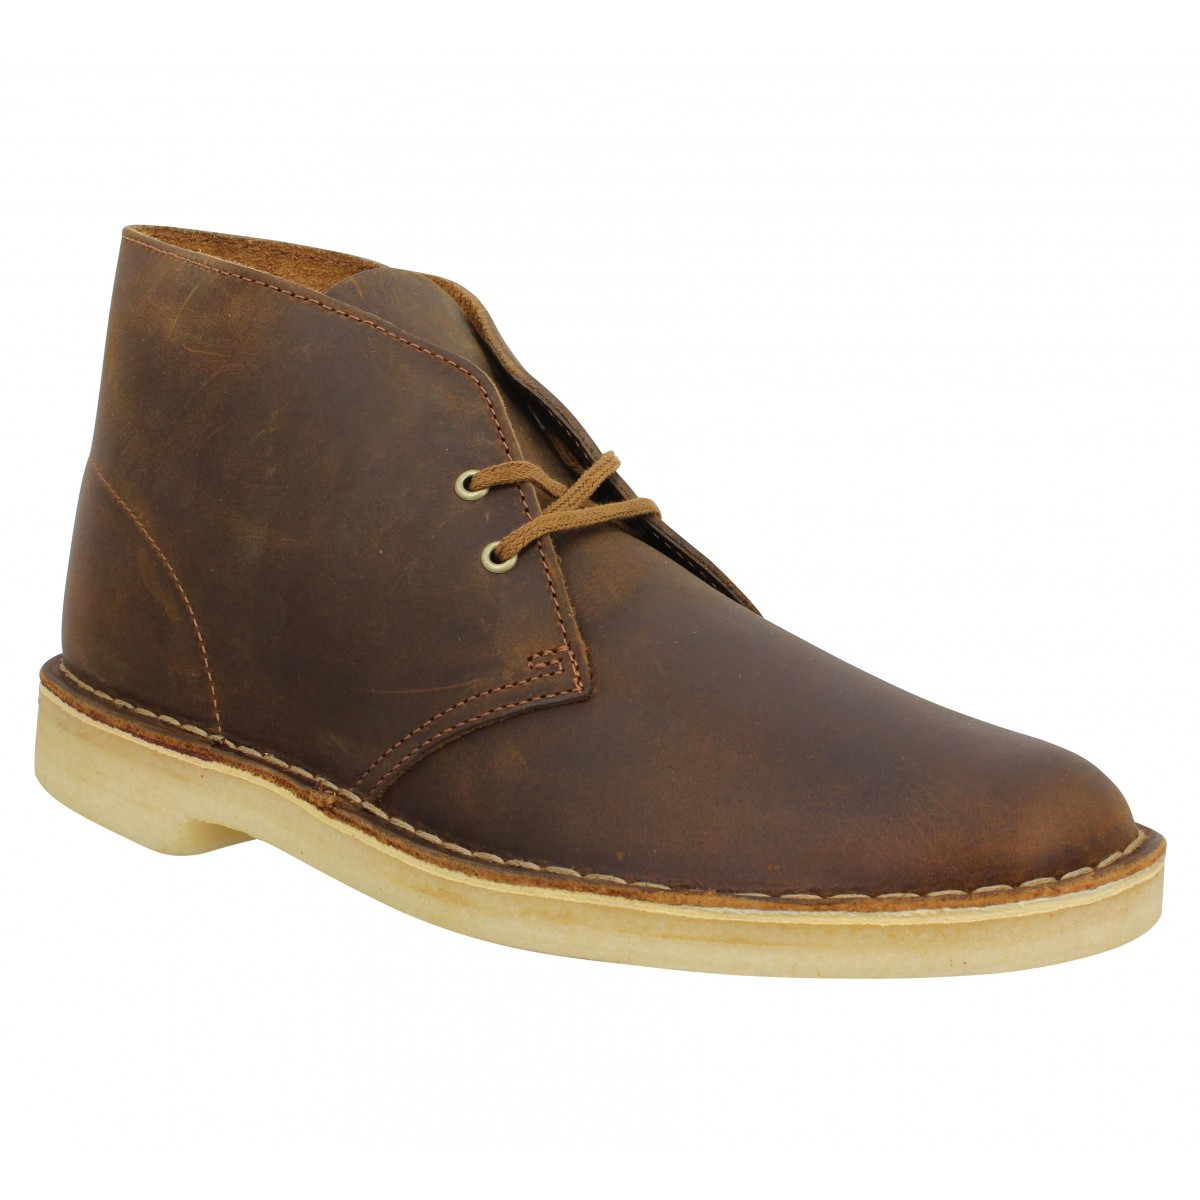 Clarks Homme Originals Boot Marron Desert Cuir IDH2E9